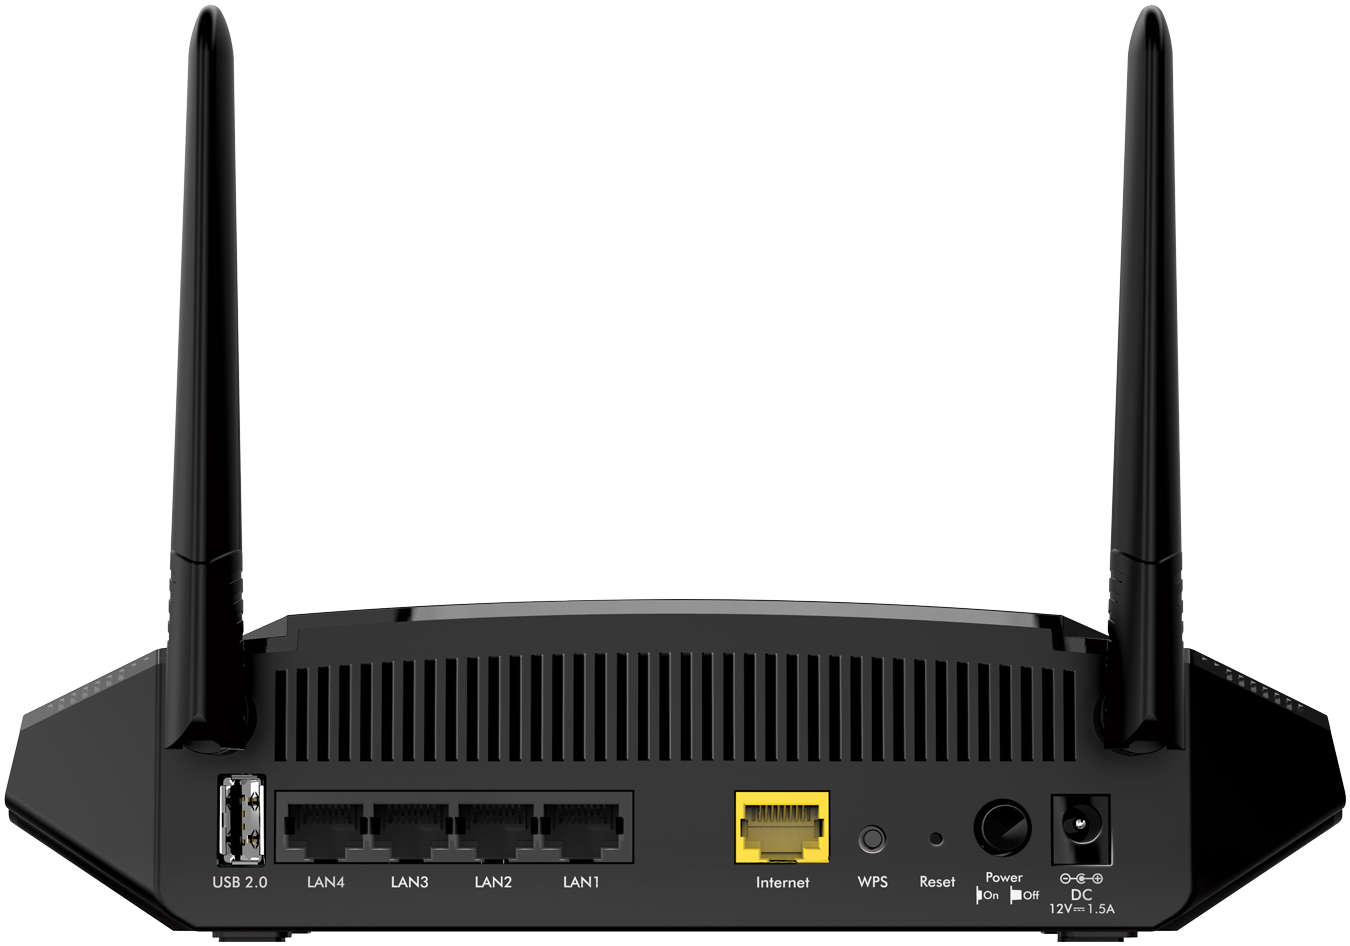 Best Gigabit Wifi Router For Large Home